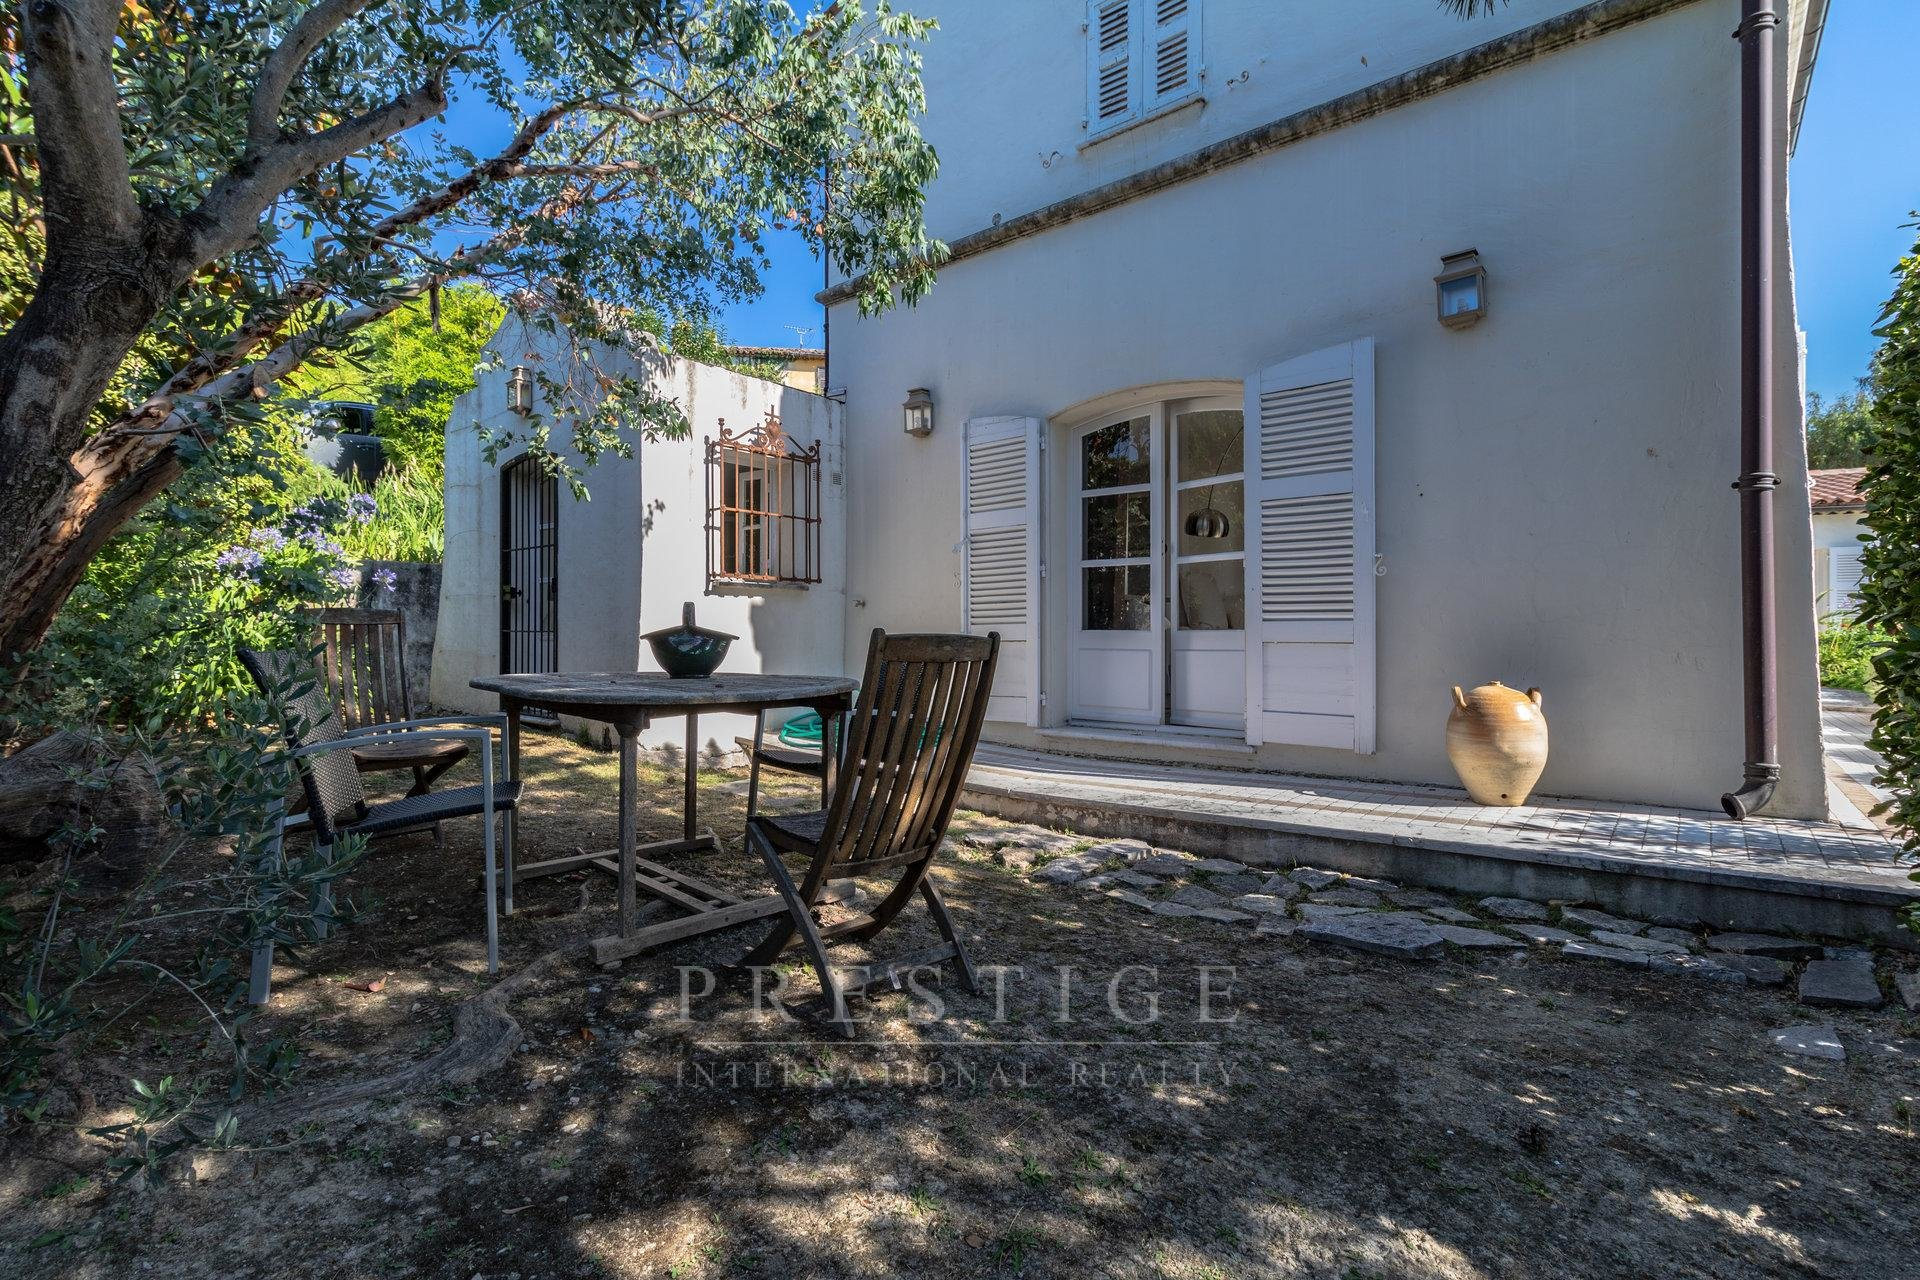 314 sqm property in La Colle-sur-Loup with pool